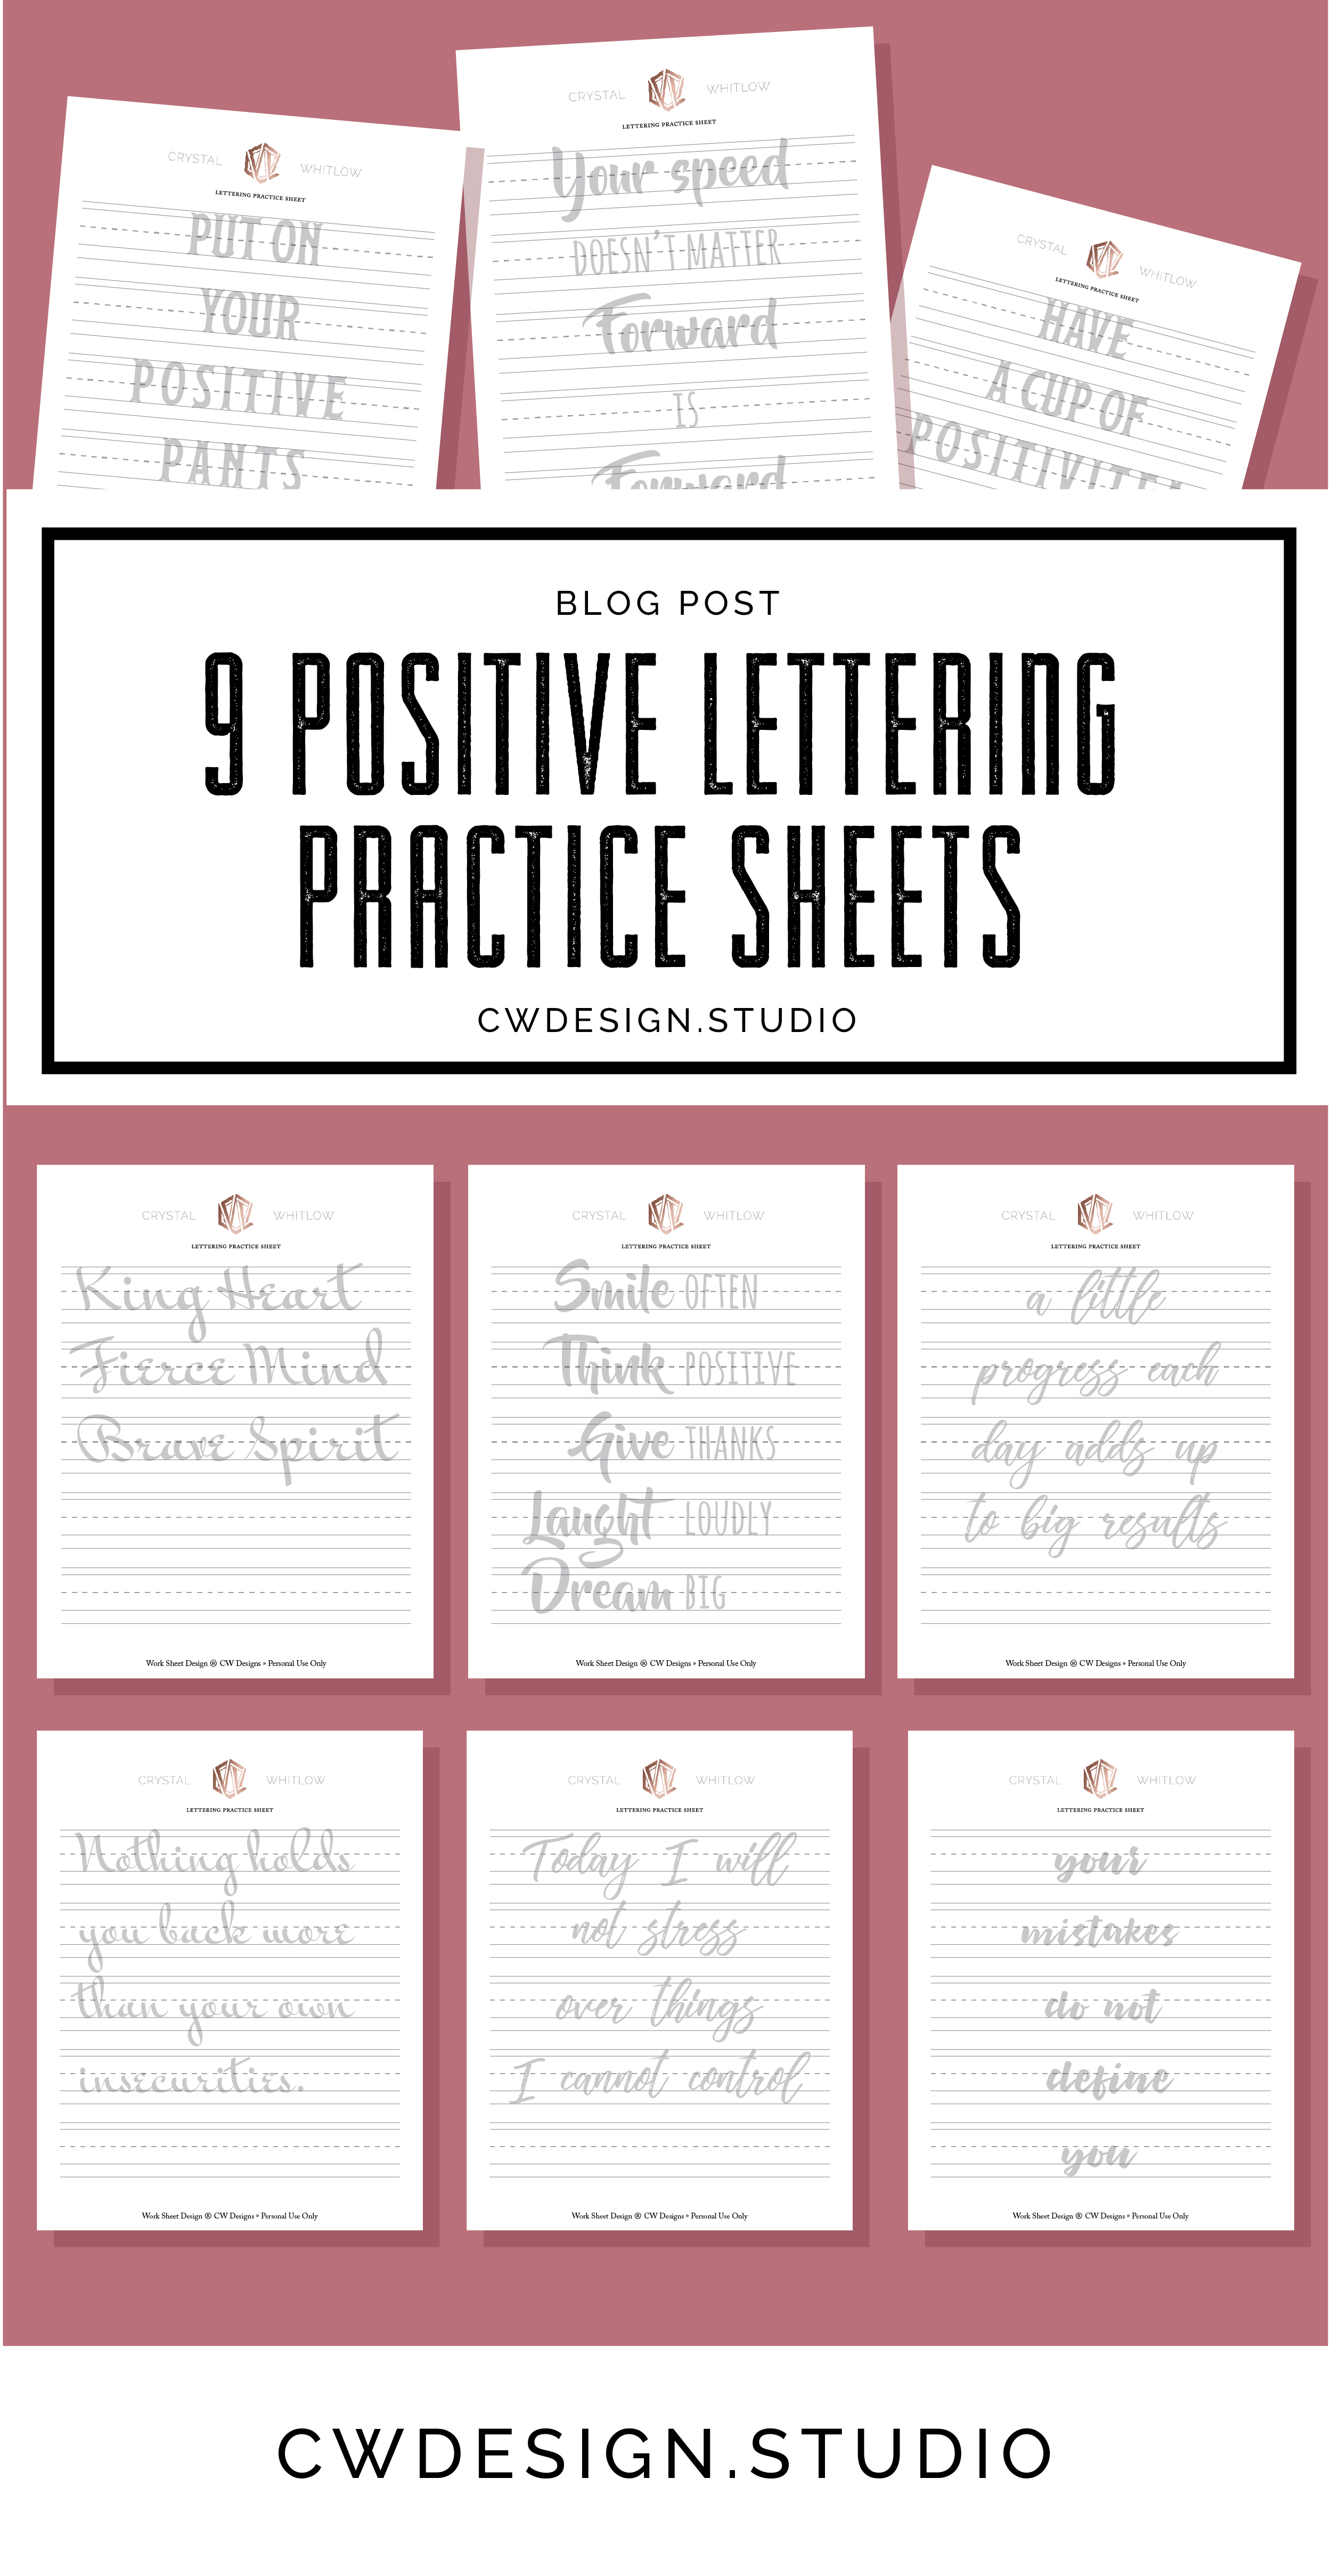 9 Positive Lettering Practice Sheets